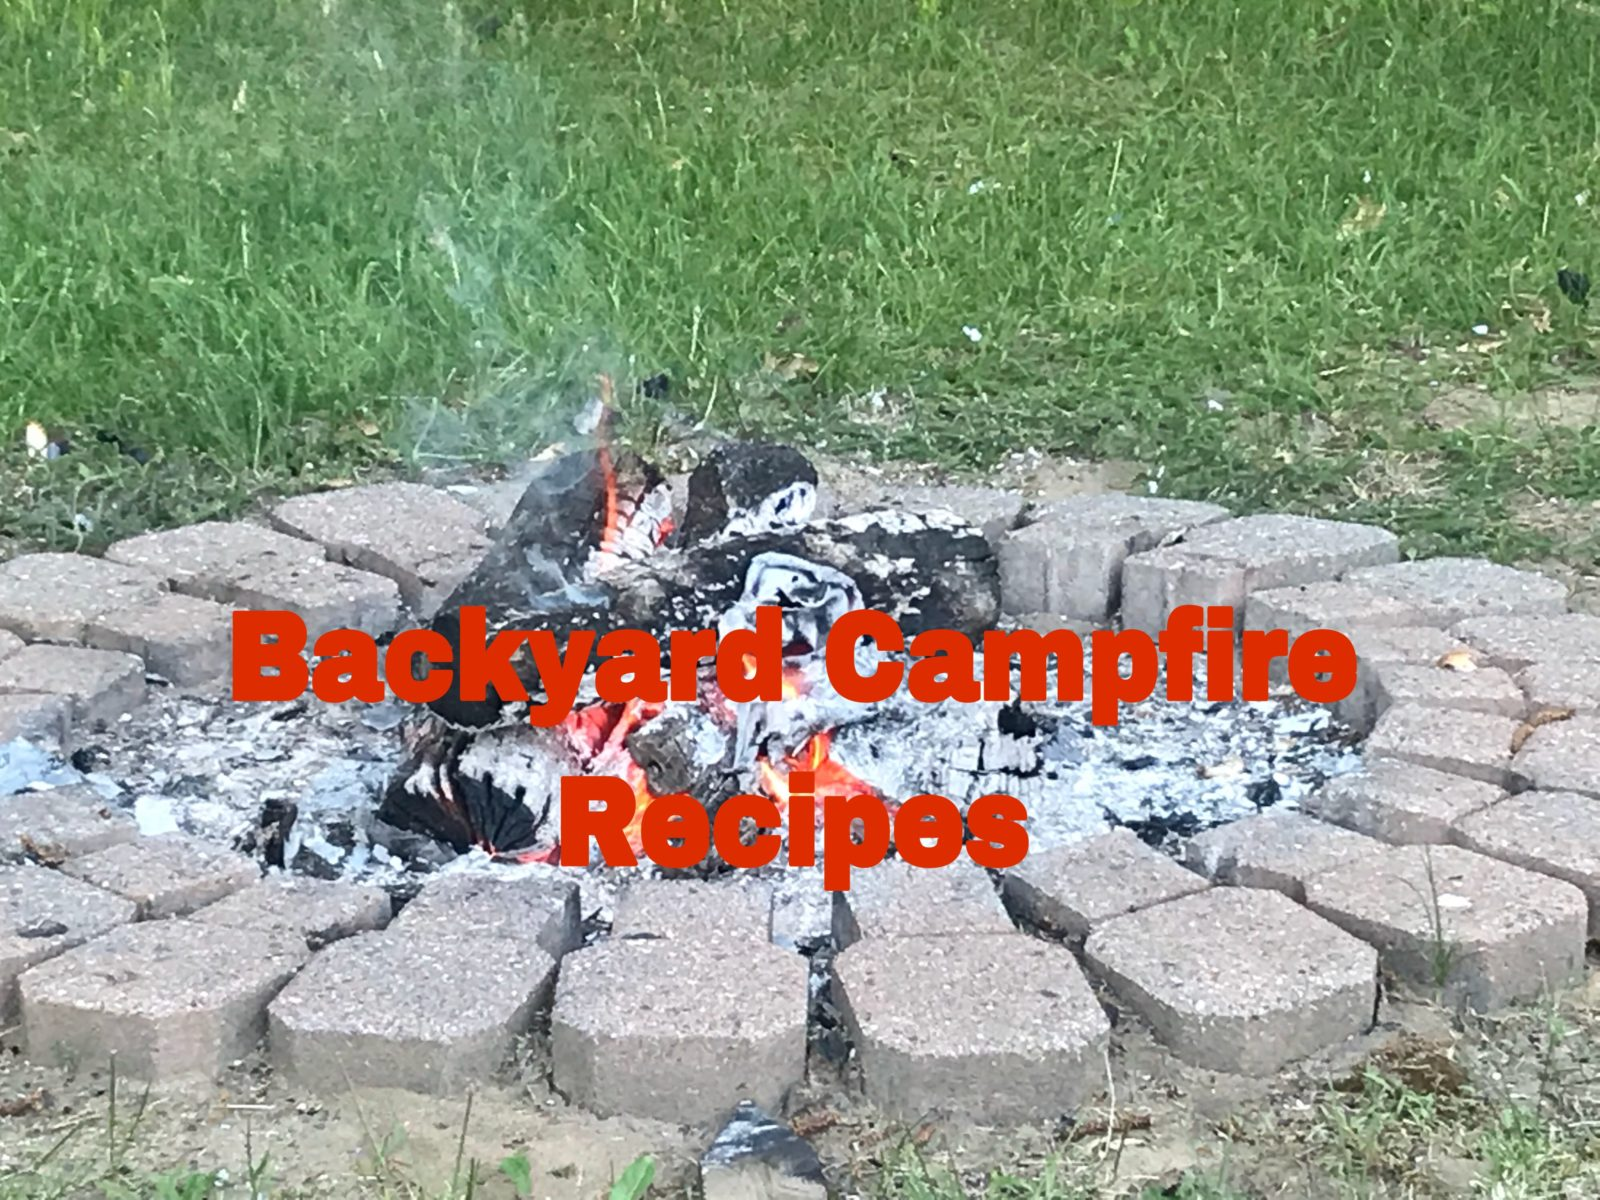 Back yard campfire and grill Recipes